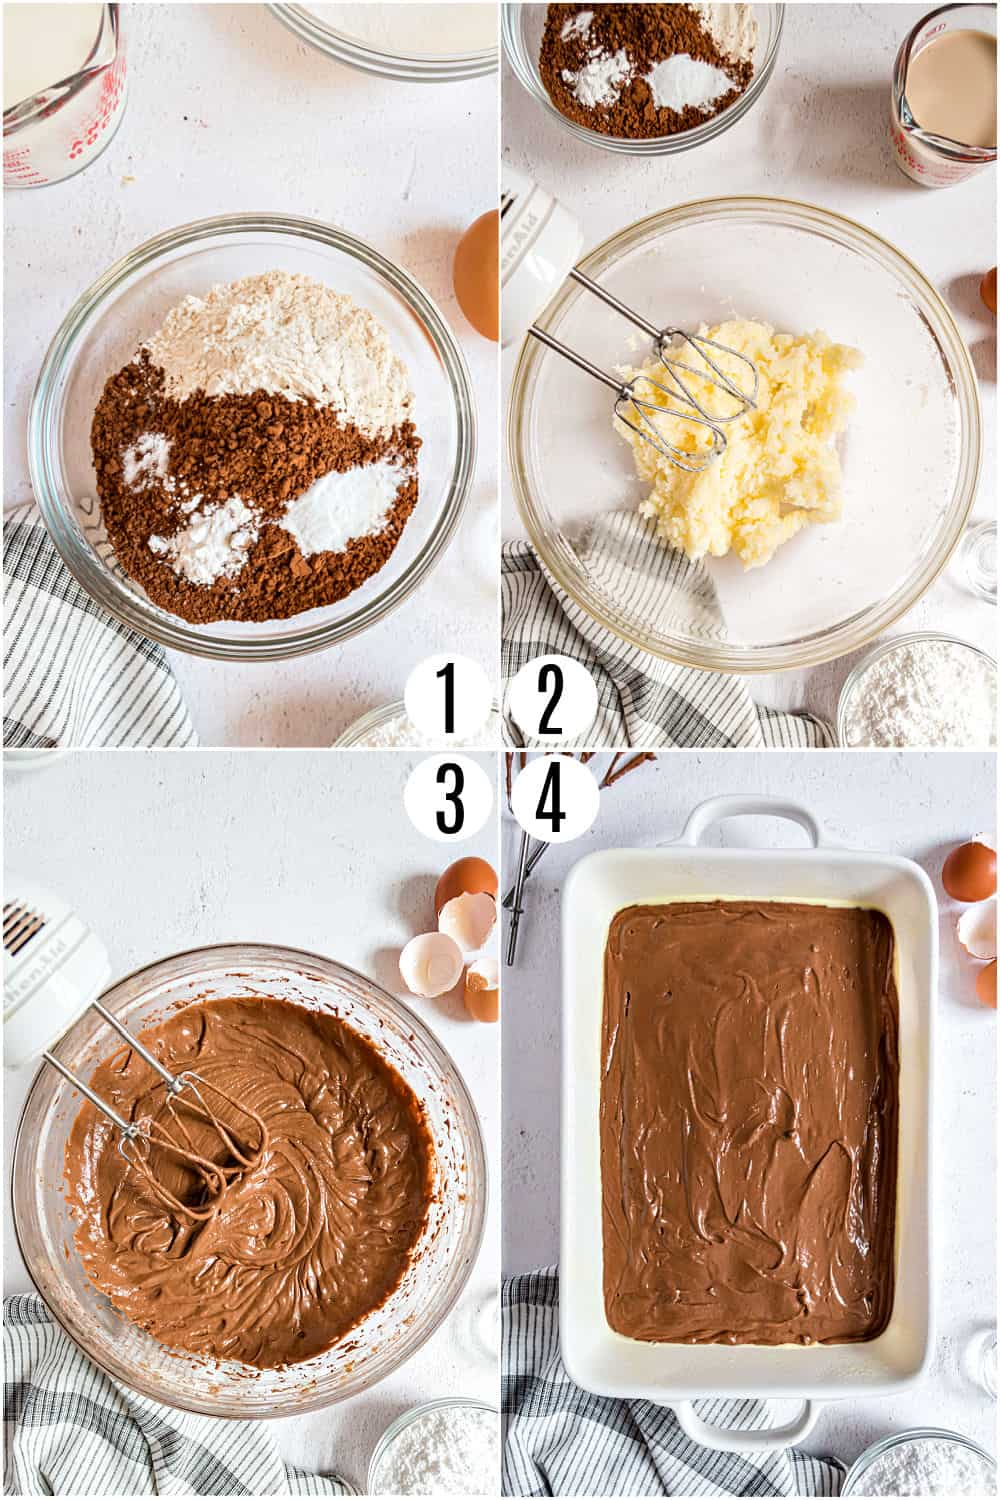 Step by step photos showing how to make chocolate cake in a 13x9 dish.